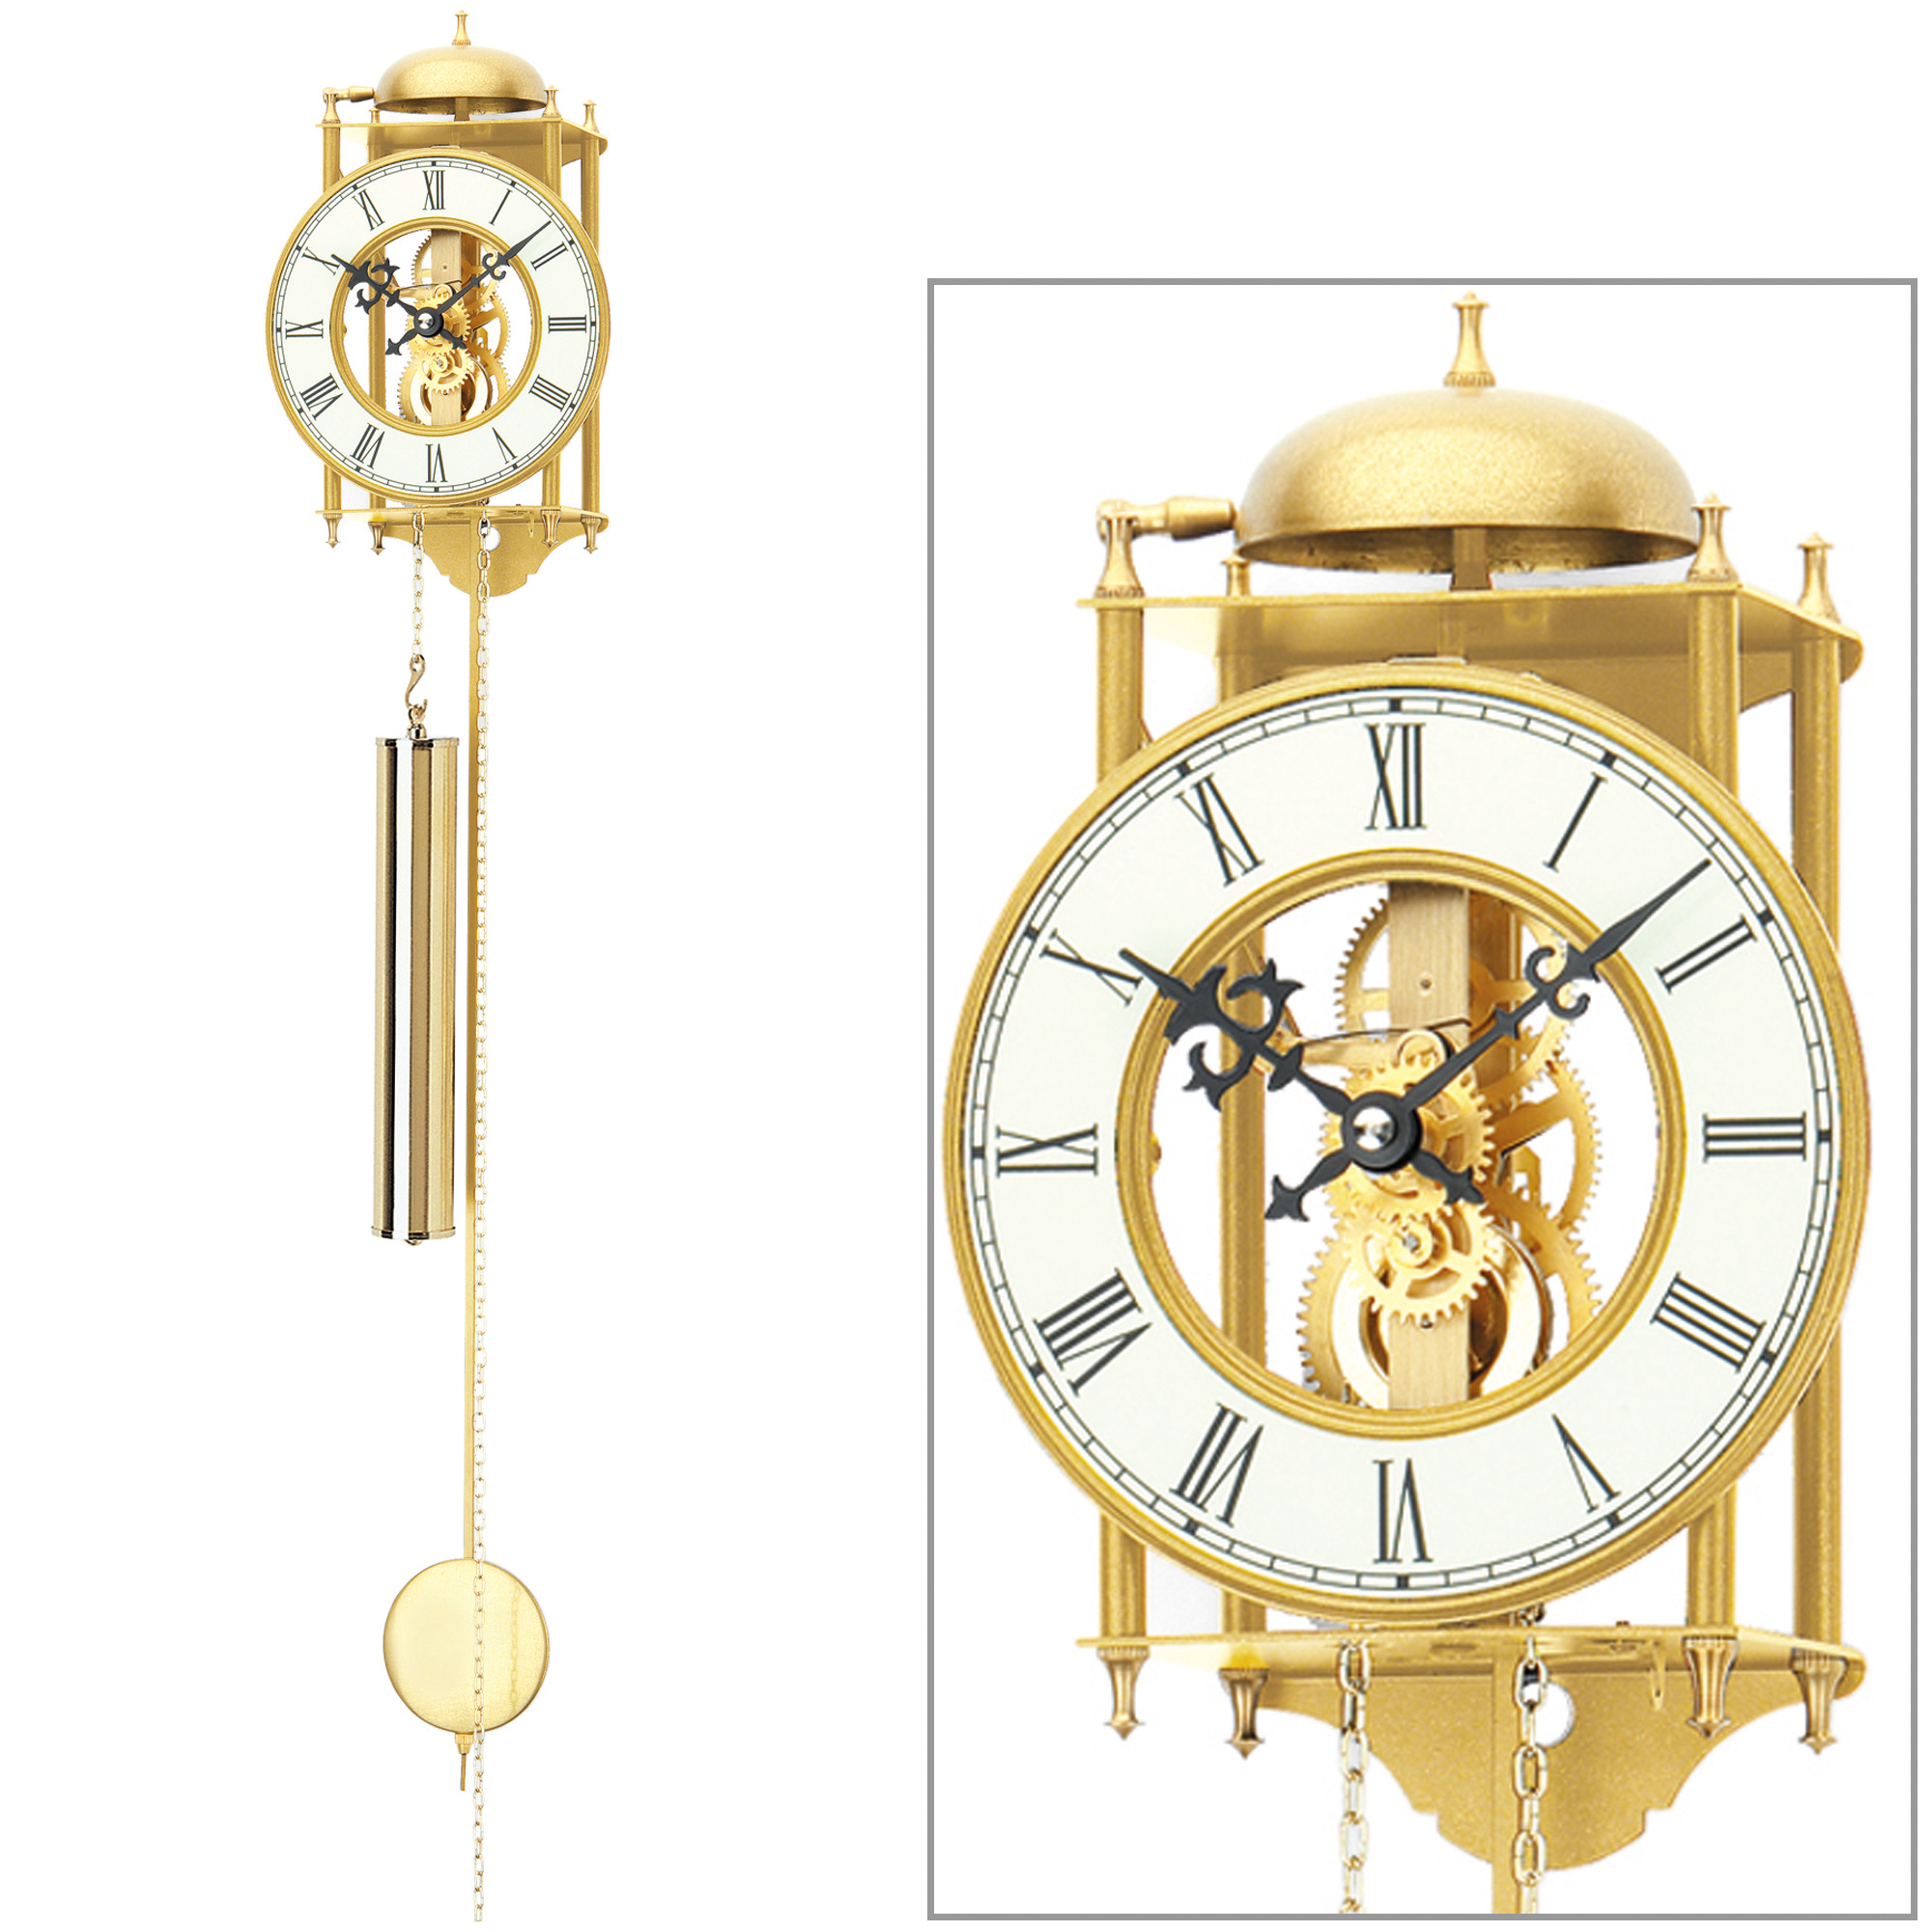 ams 303 wanduhr mit pendel mechanisch golden metall pendeluhr skelettuhr ebay. Black Bedroom Furniture Sets. Home Design Ideas